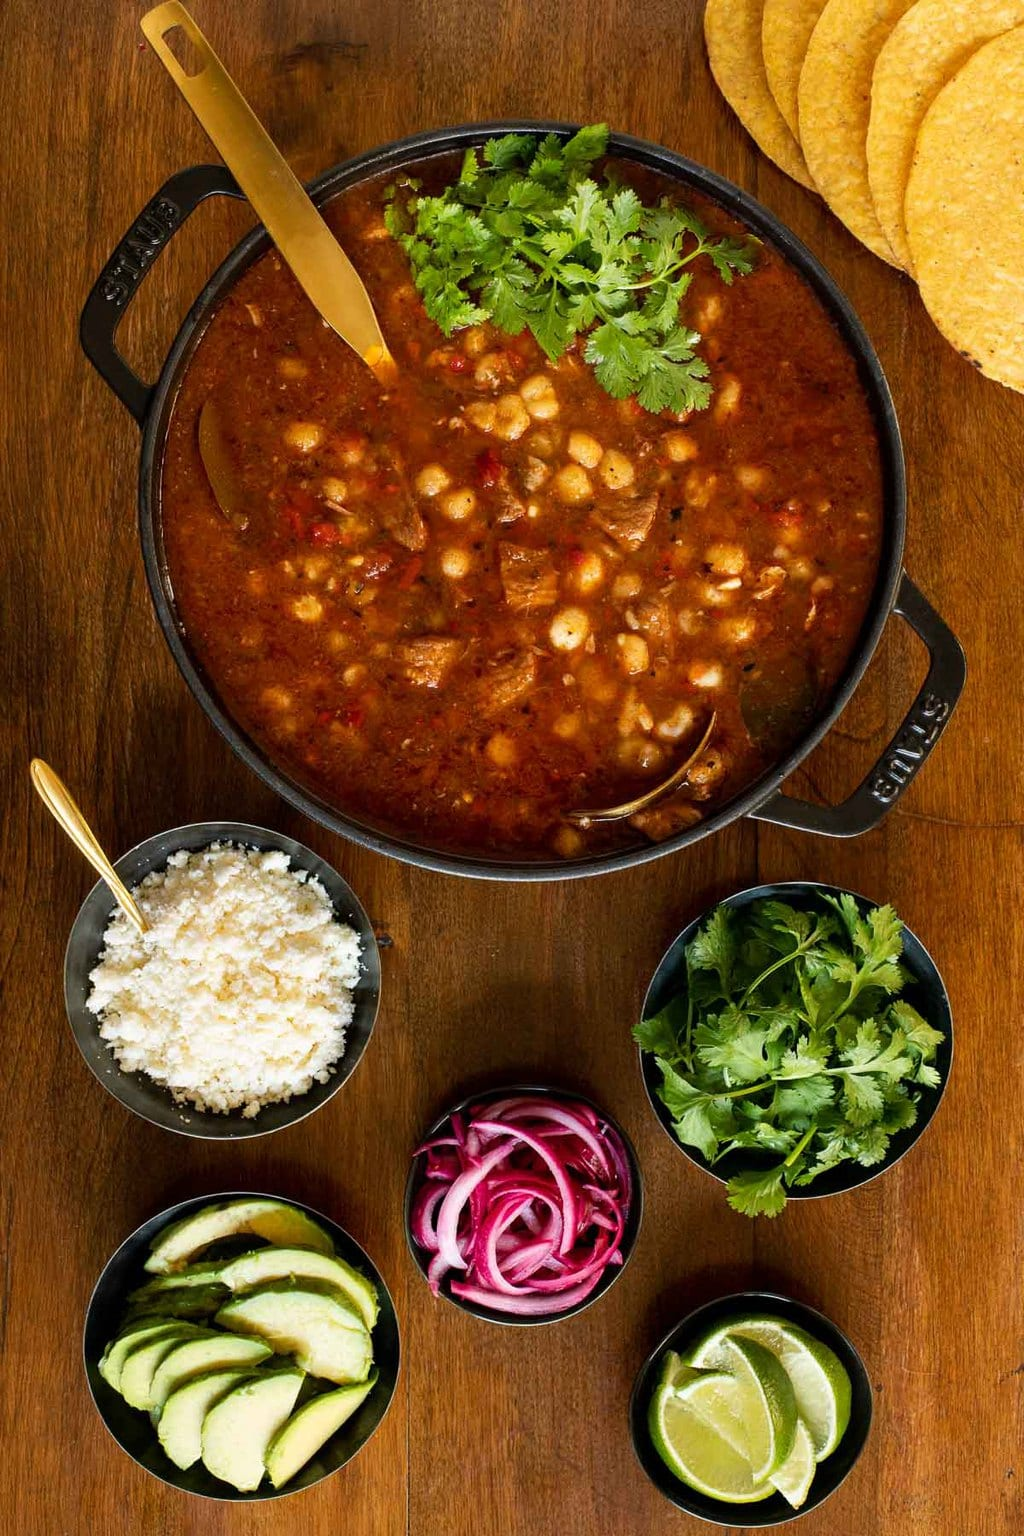 Overhead vertical photo of a Staub cast iron cooker filled with Braised Pork Shoulder Pozole and surrounded by small dishes of garnishes nearby.